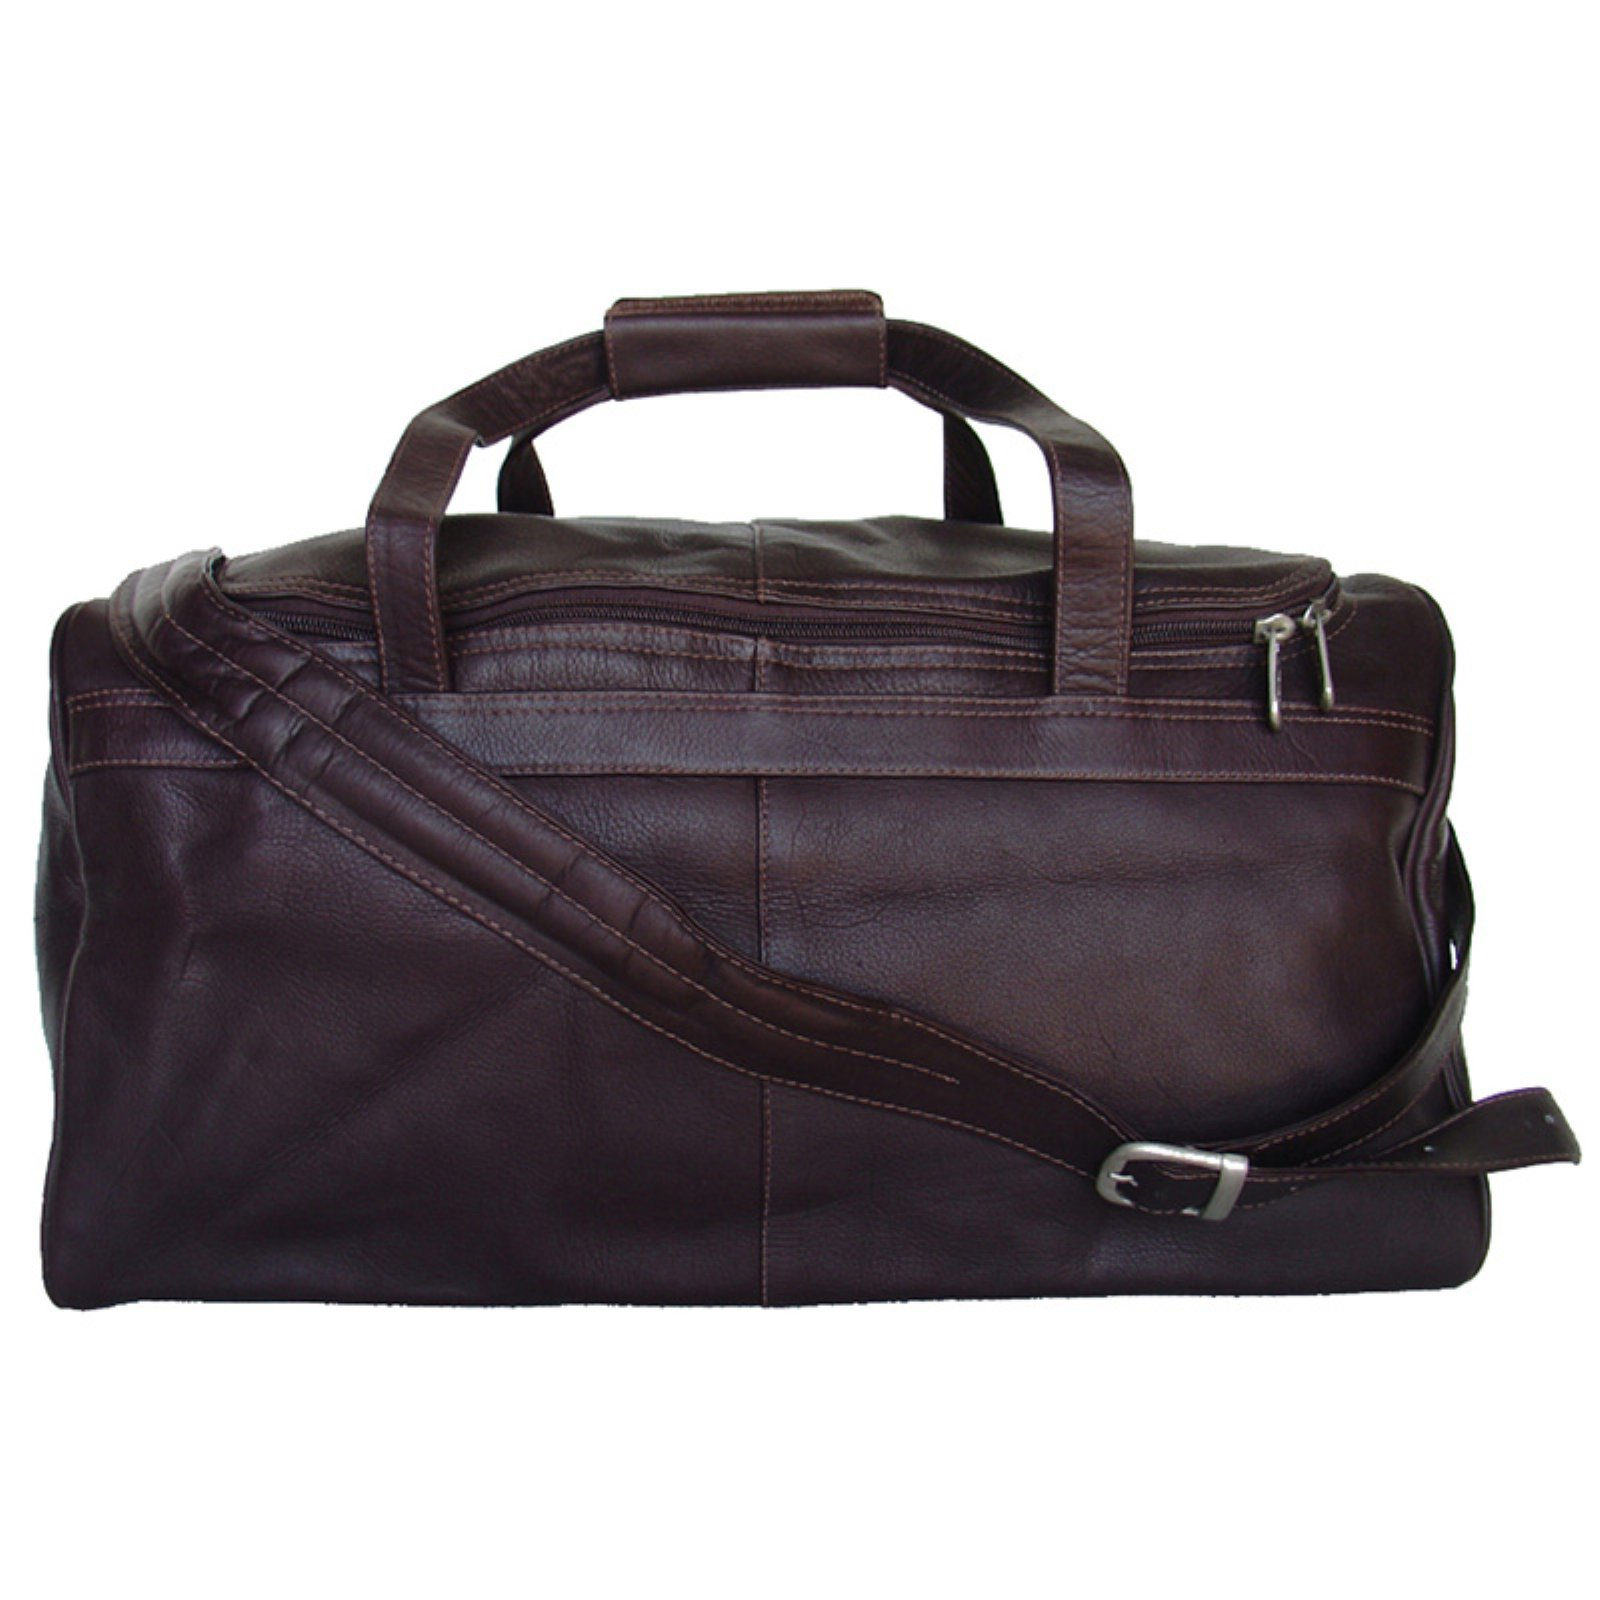 Piel Leather Travelers Select Small Duffel Bag - Chocolate